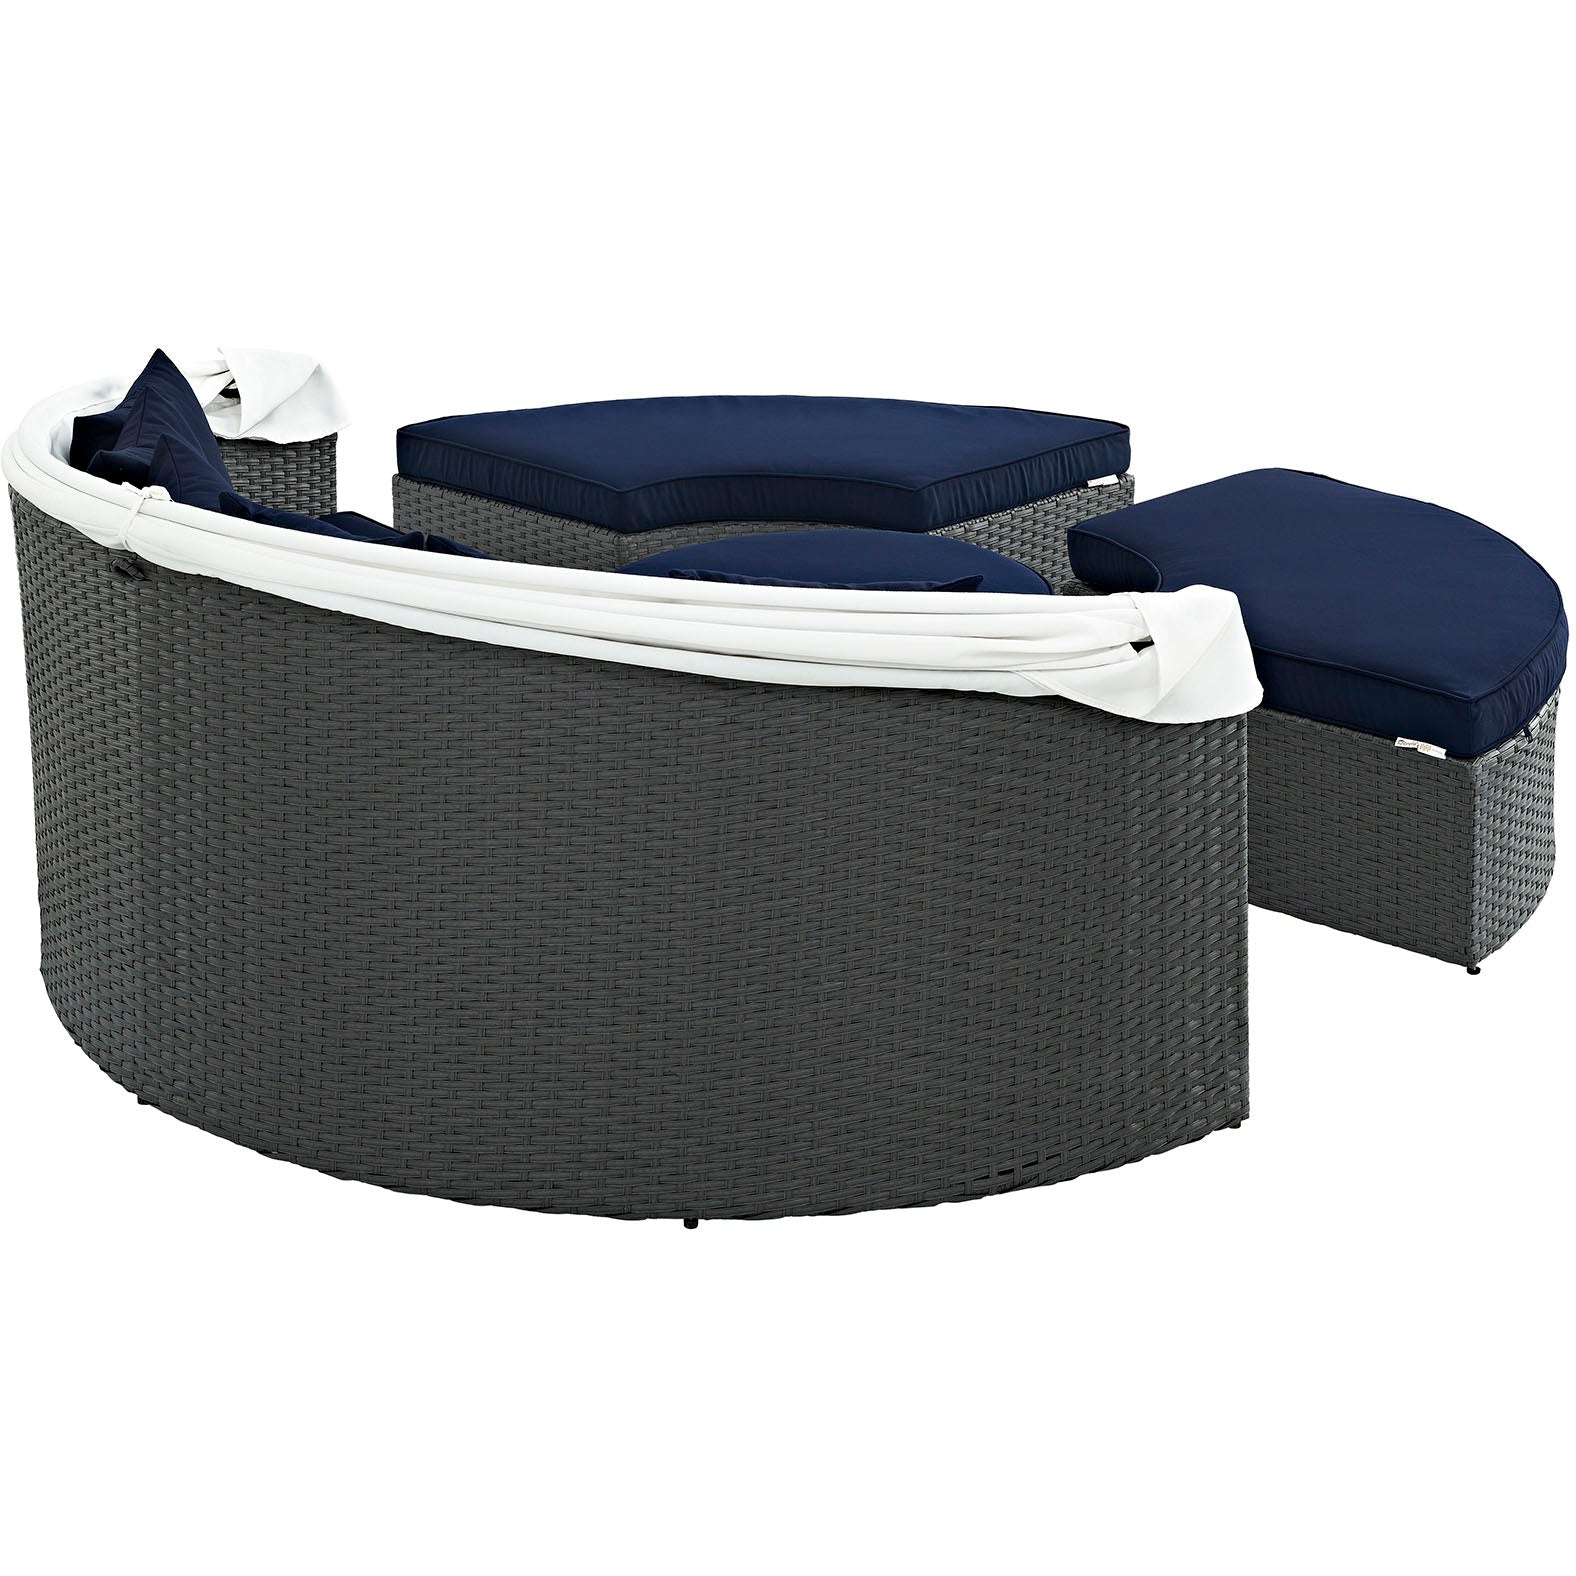 Sojourn Outdoor Patio Sunbrella® Daybed - Canvas Navy